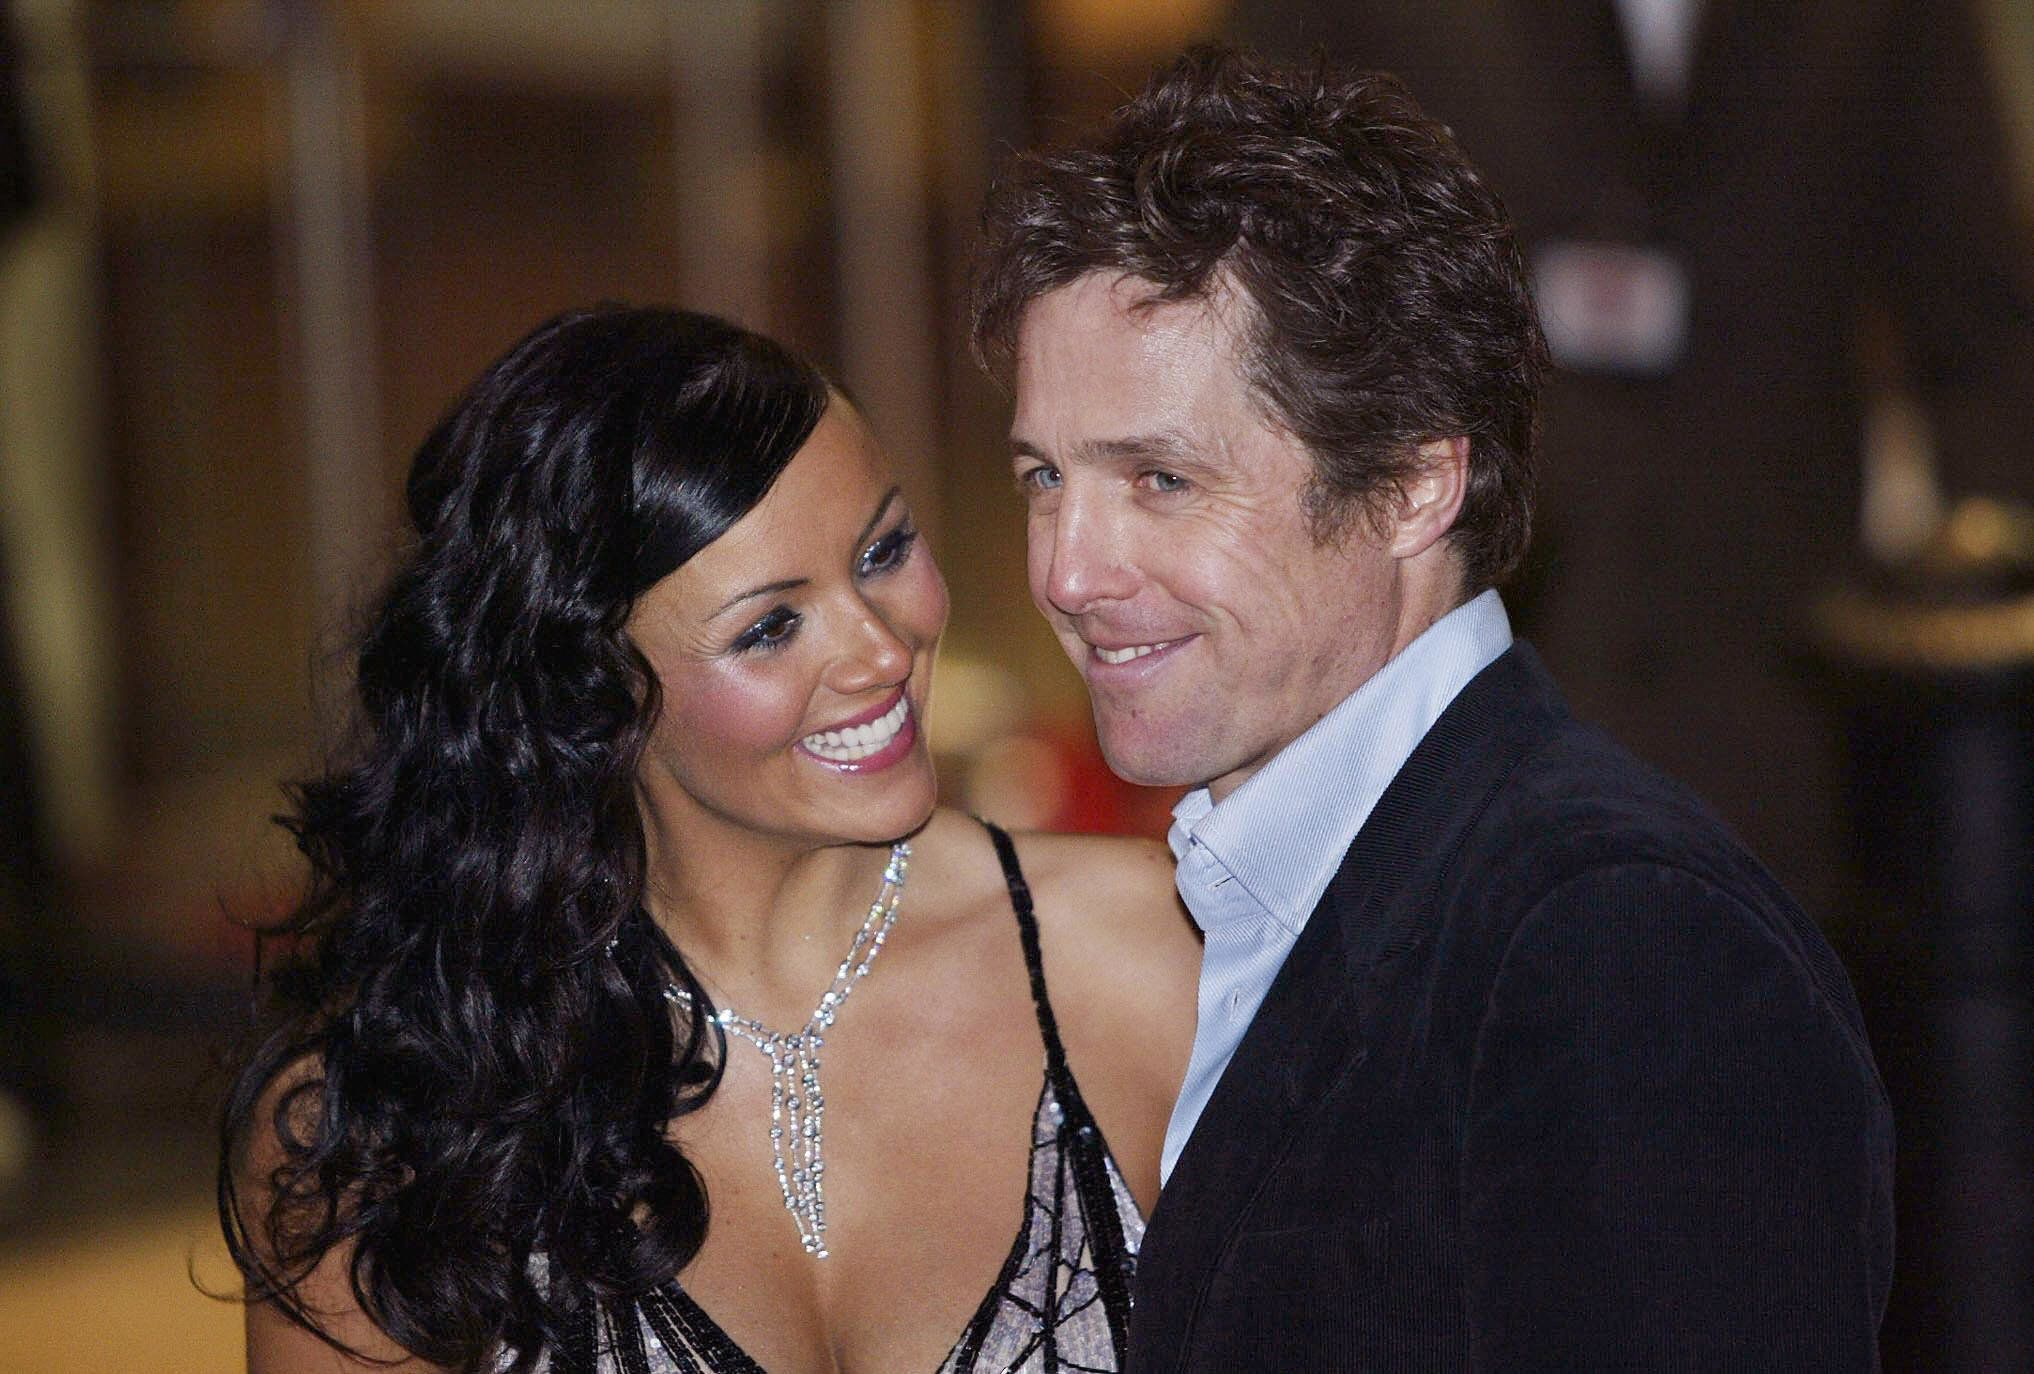 LONDON, UNITED KINGDOM:  Hugh Grant (R) and Martine McCutcheon arrive for the UK premiere of the film 'Love Actually', at the Odeon Cinema, Leicester Square in London, 16 November 2003. 'Love Actually' is the latest film from director Richard Curtis, who made 'Four Weddings and a Funeral' and 'Notting Hill'.  AFP PHOTO/ALESSANDRO ABBONIZIO  (Photo credit should read ALESSANDRO ABBONIZIO/AFP/Getty Images)